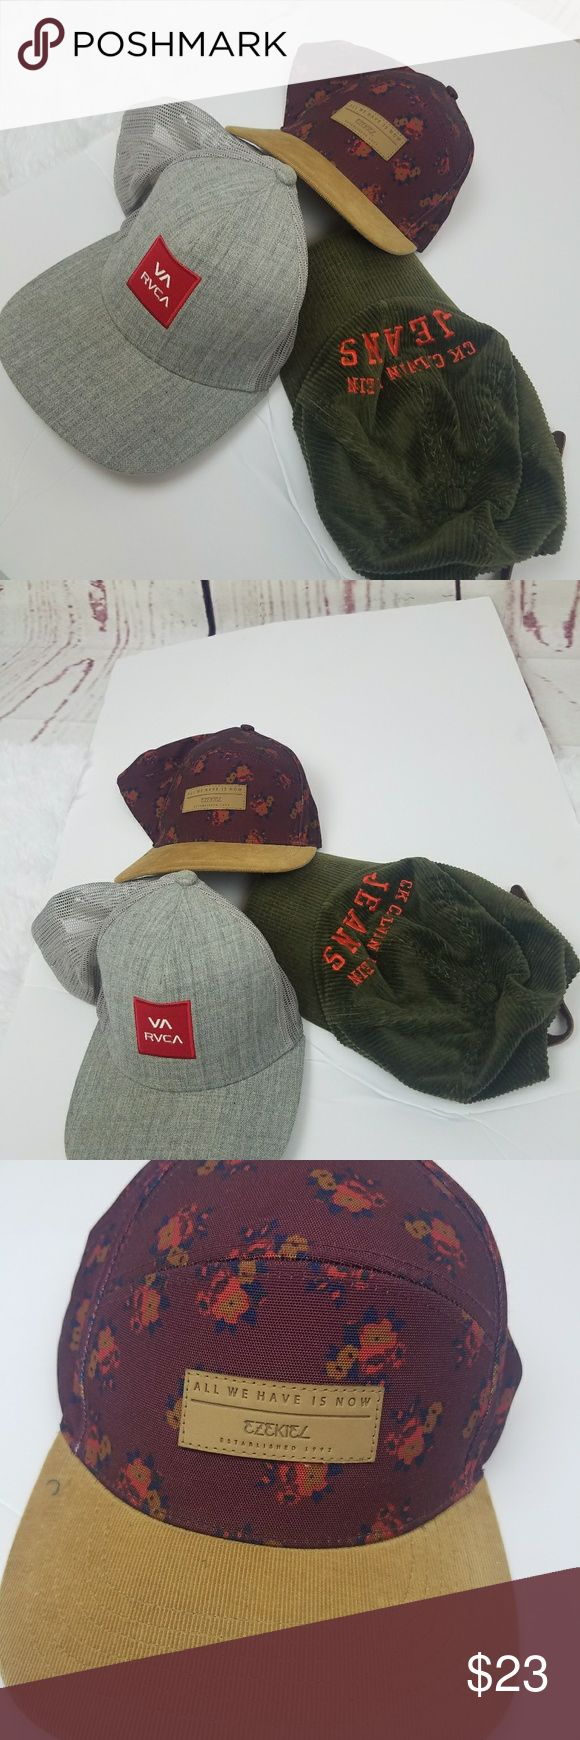 Lot of 3 hats RVCA. CK JEANS Gray VA RVCA. GREEN CORDUROY CK JEANS .  Maroon floral. Preow n. Good condition. Minor signs of previous use. RVCA Accessories Hats